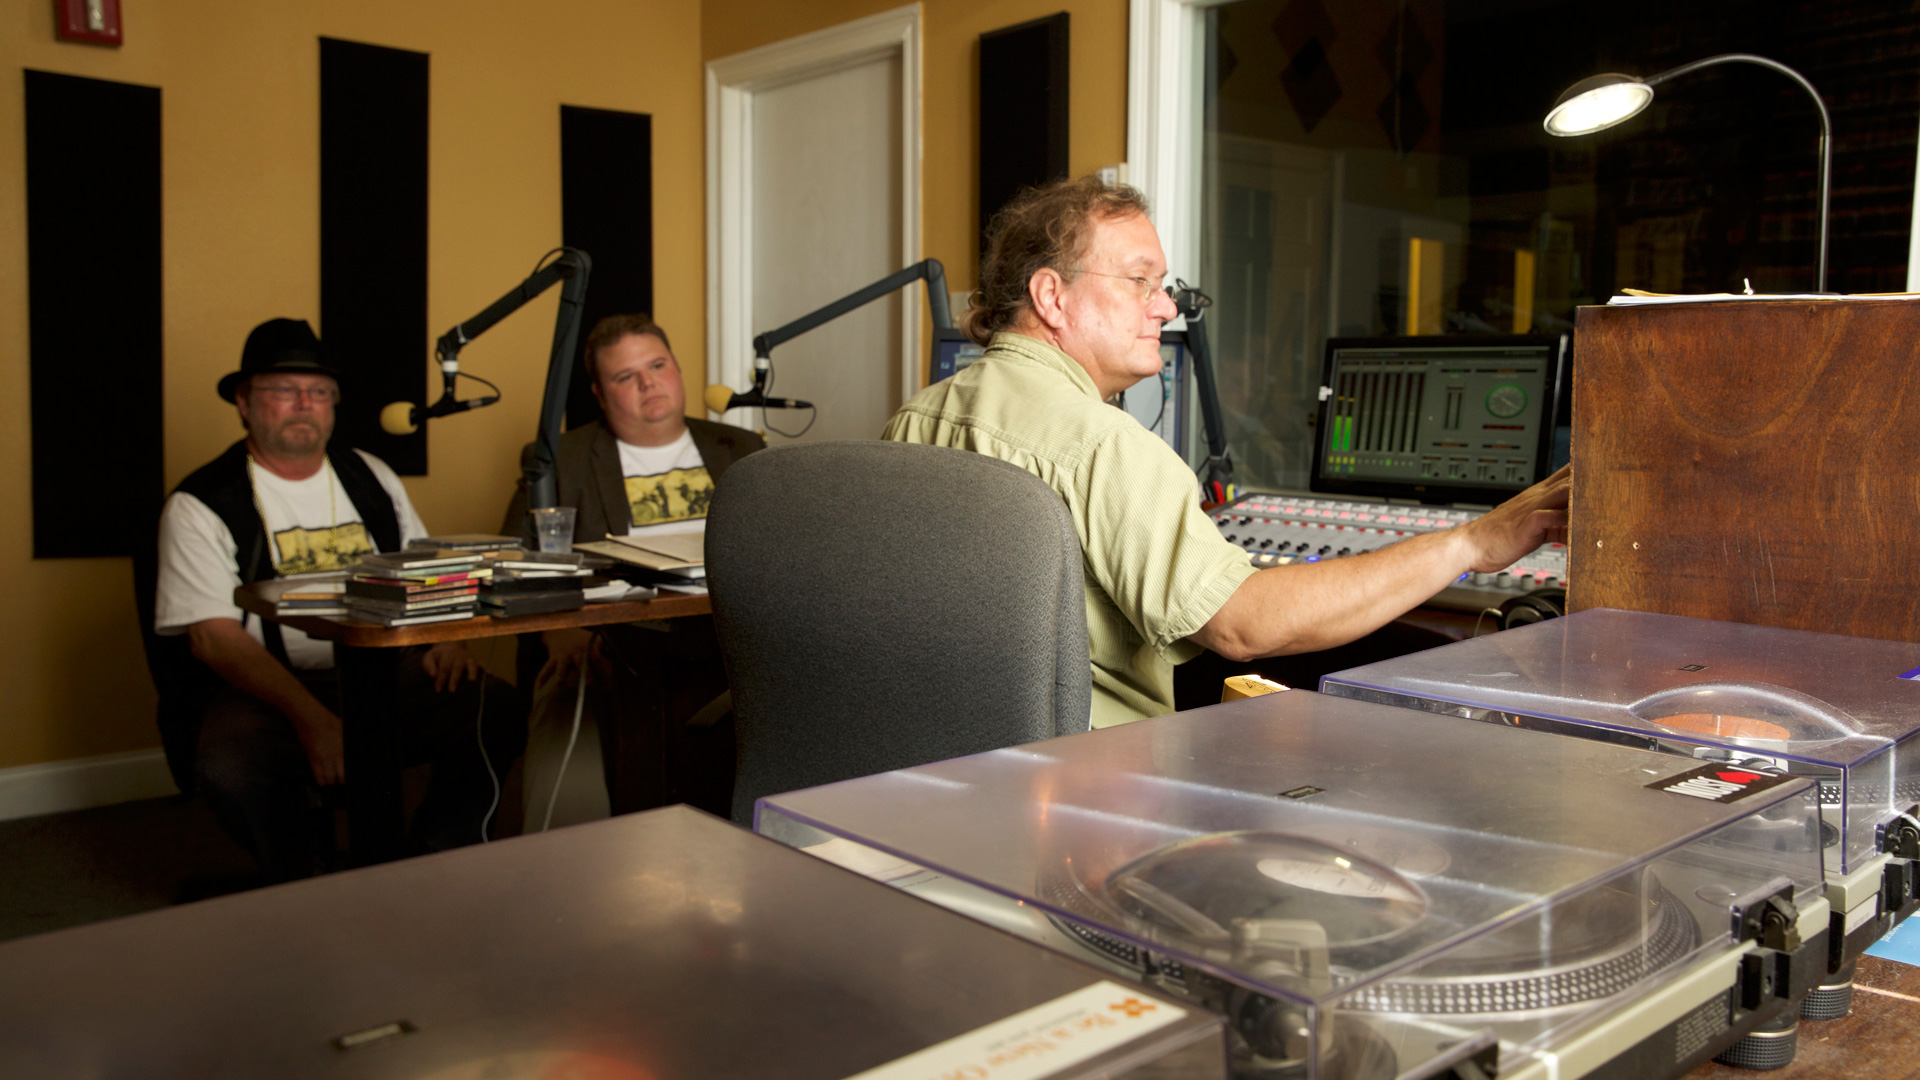 WWOZ Studios - Traditional Jazz by Dan Meyer, New Orleans 2015